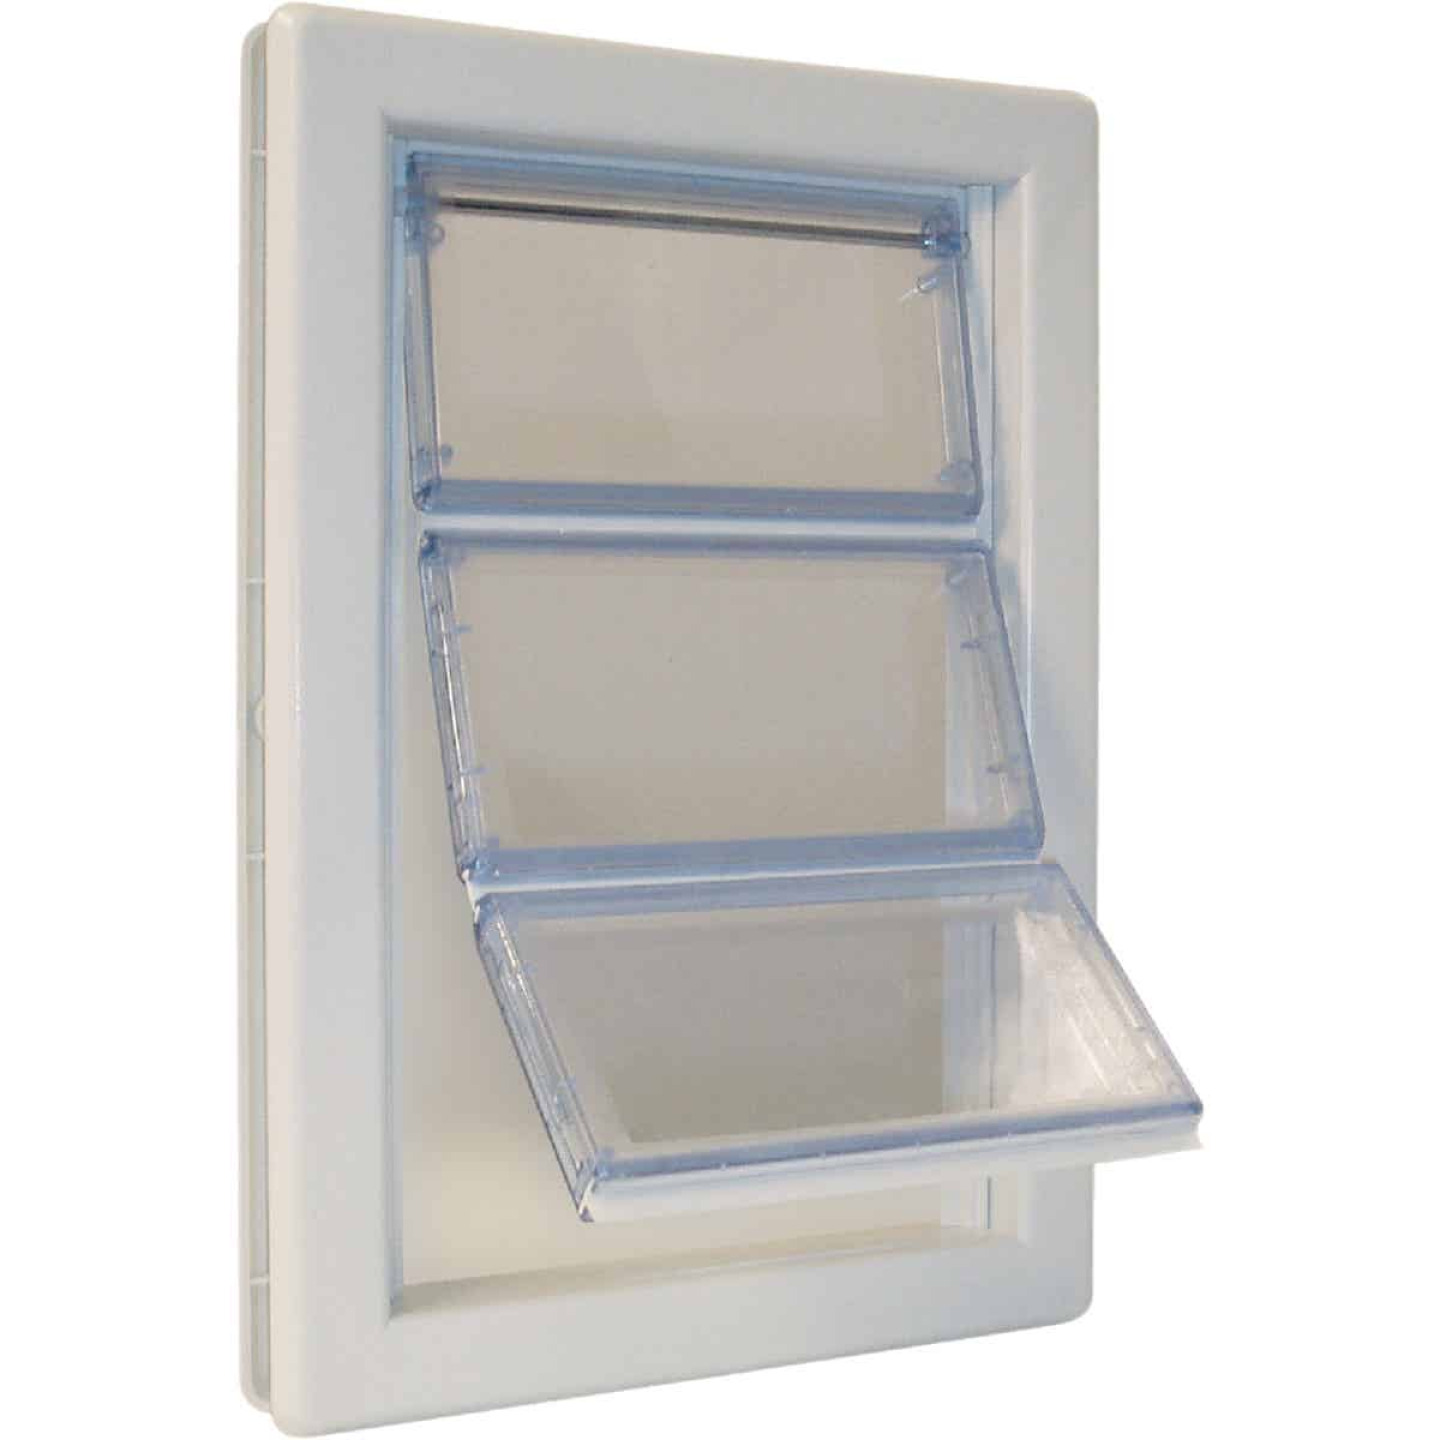 Ideal Airseal 10-1/4 In. x 15-3/4 In. Extra Large Plastic White Pet Door Image 1